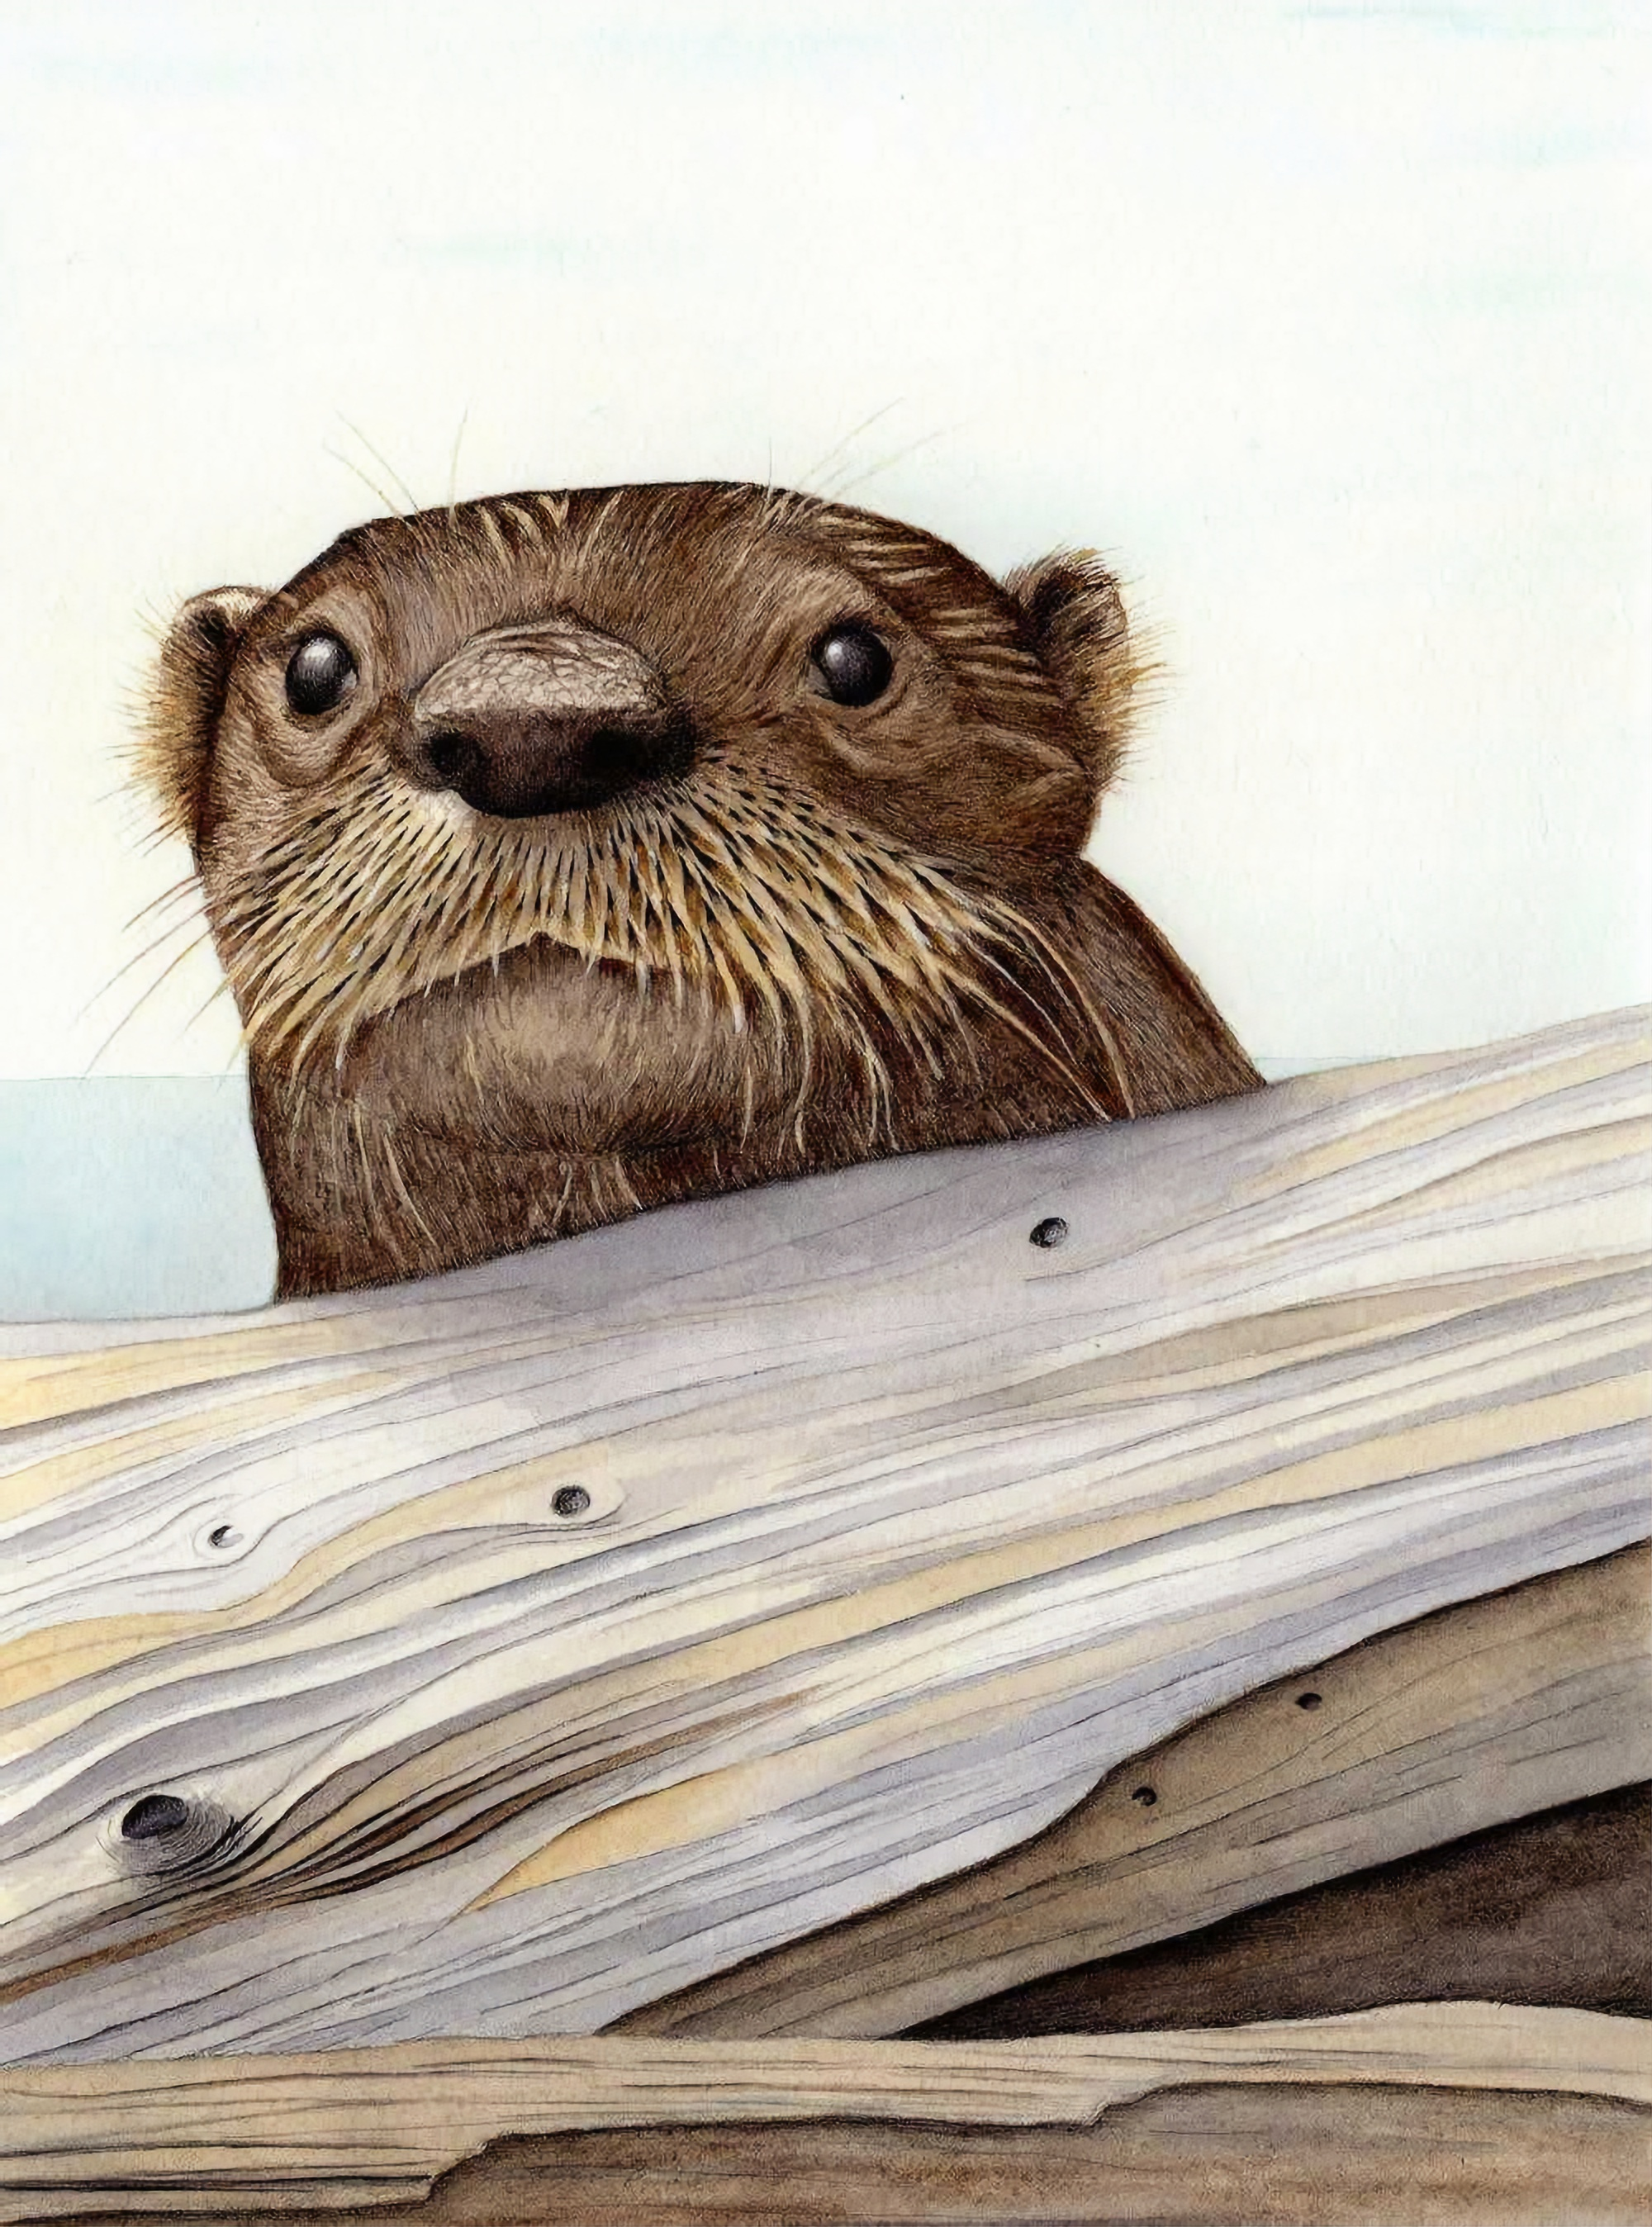 River Otter illustration by Nora Sherwood